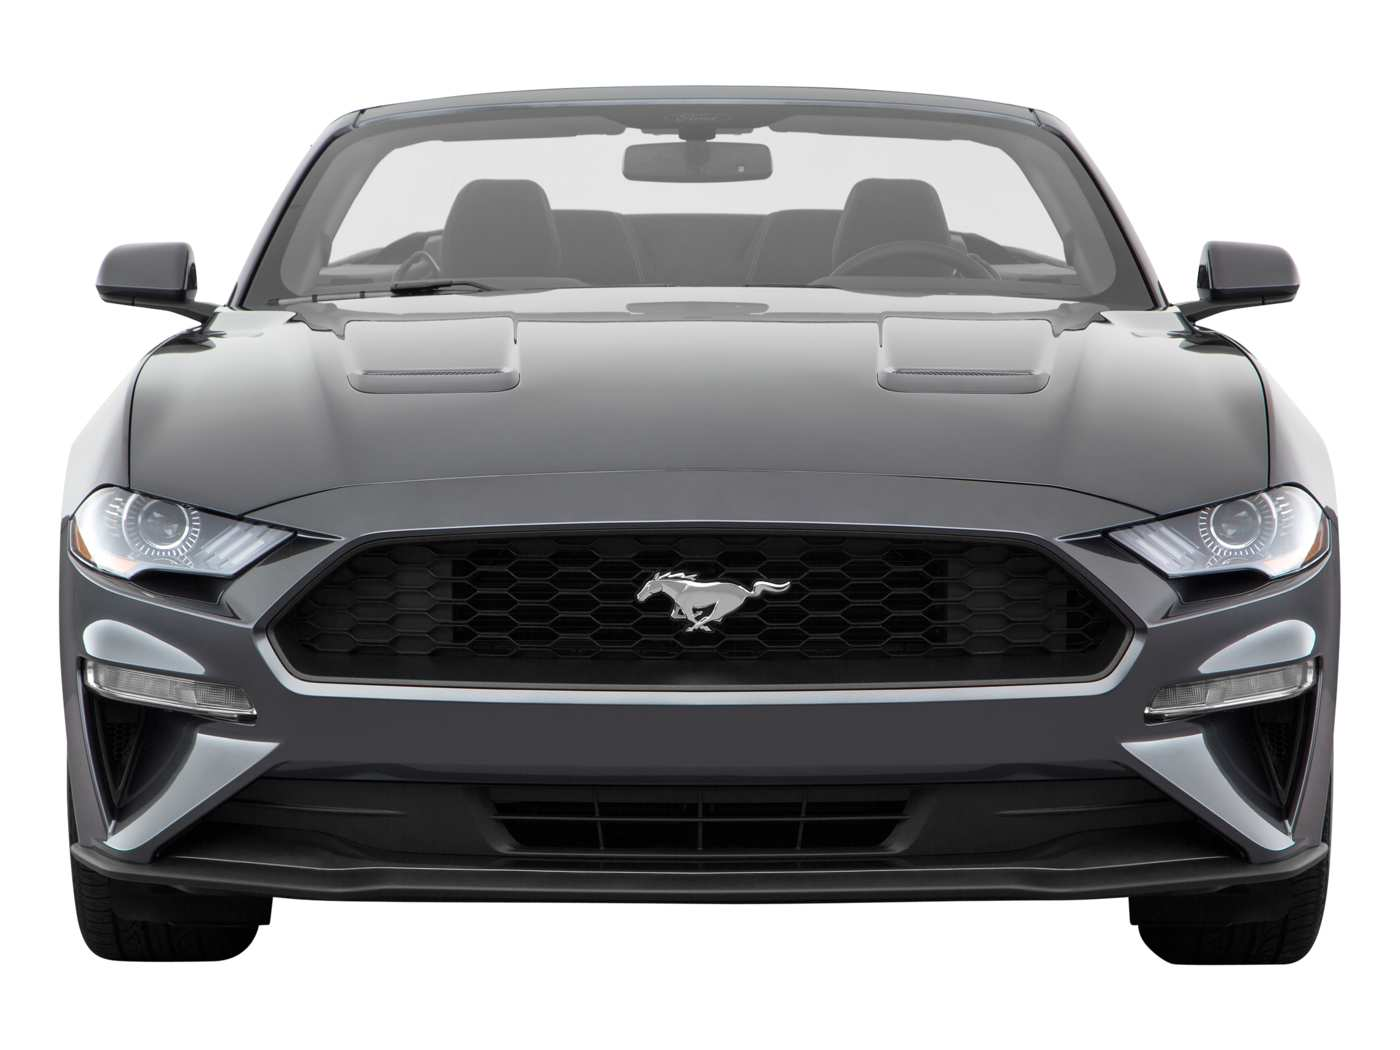 2020 Ford Mustang Ecoboost Convertible Front View